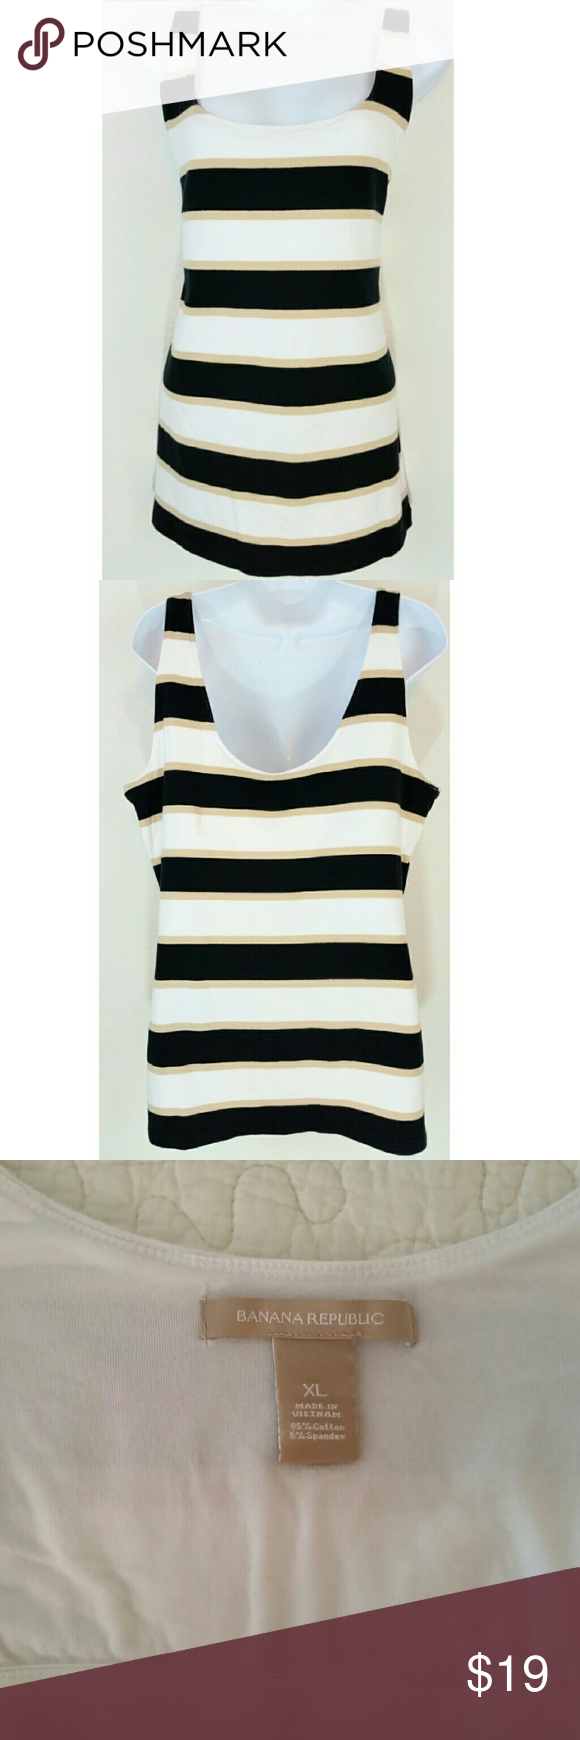 Banana Republic Color Block Striped Tank Top XL A cute nautical-look tank with attached bust support. Approximate measurements in inches taken laying flat & measuring from corner to corner then doubling to get full measurement around.  BUST: 38 WAIST: 34 LENGTH: 28 FABRIC: 95% cotton, 5% spandex Banana Republic Tops Tank Tops